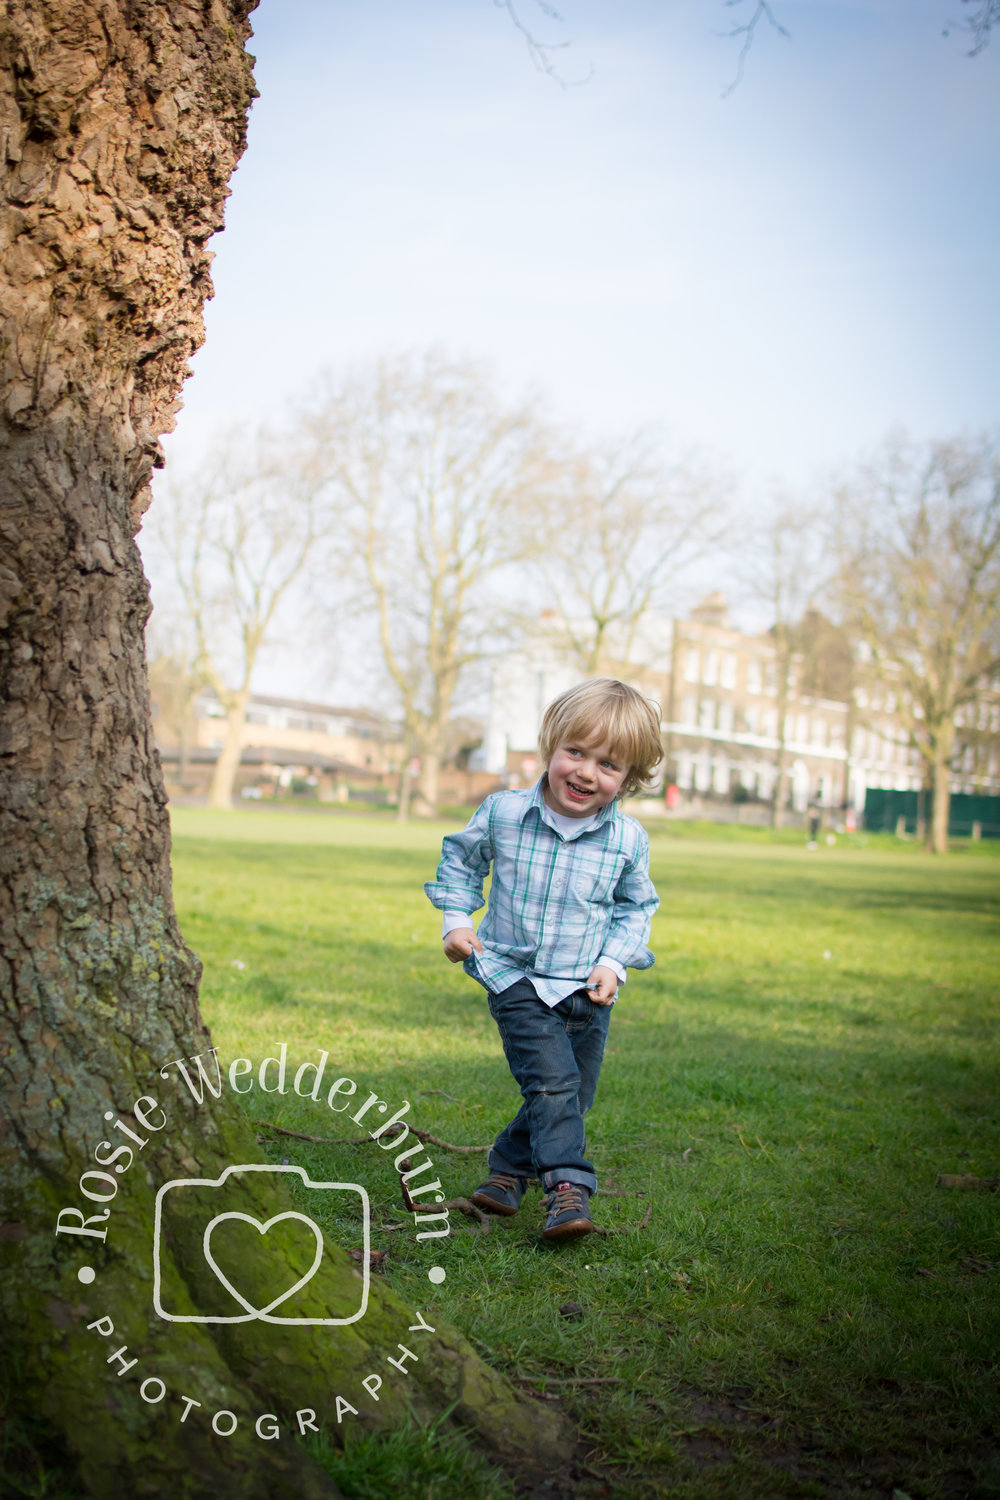 The moment he spied his dad, hiding behind a tree produced a sweet, joyful smile!